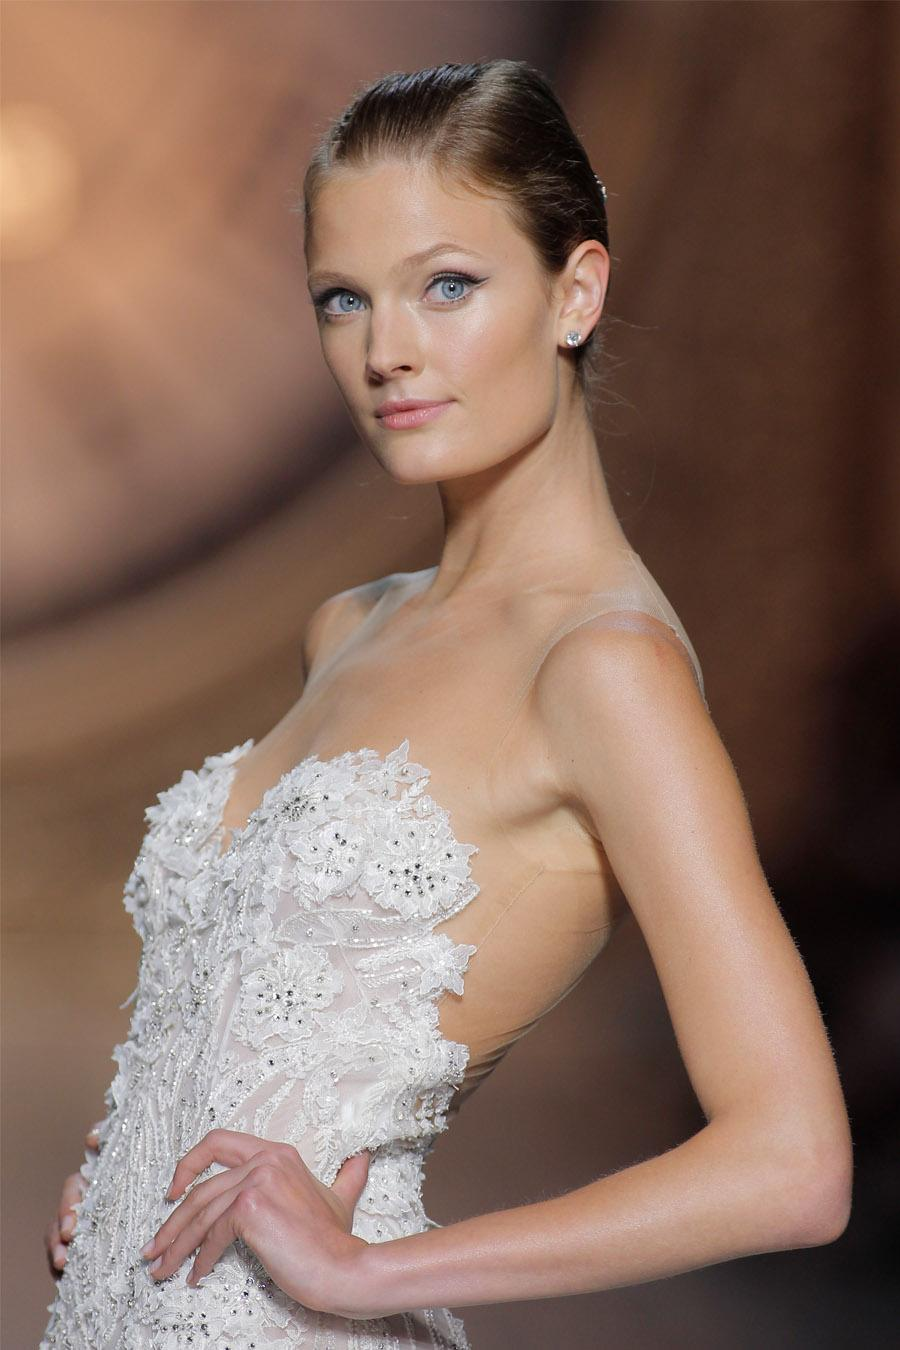 PRONOVIAS FASHION SHOW 2016: ONCE UPON A TIME pronovias_2016_17_900x1350